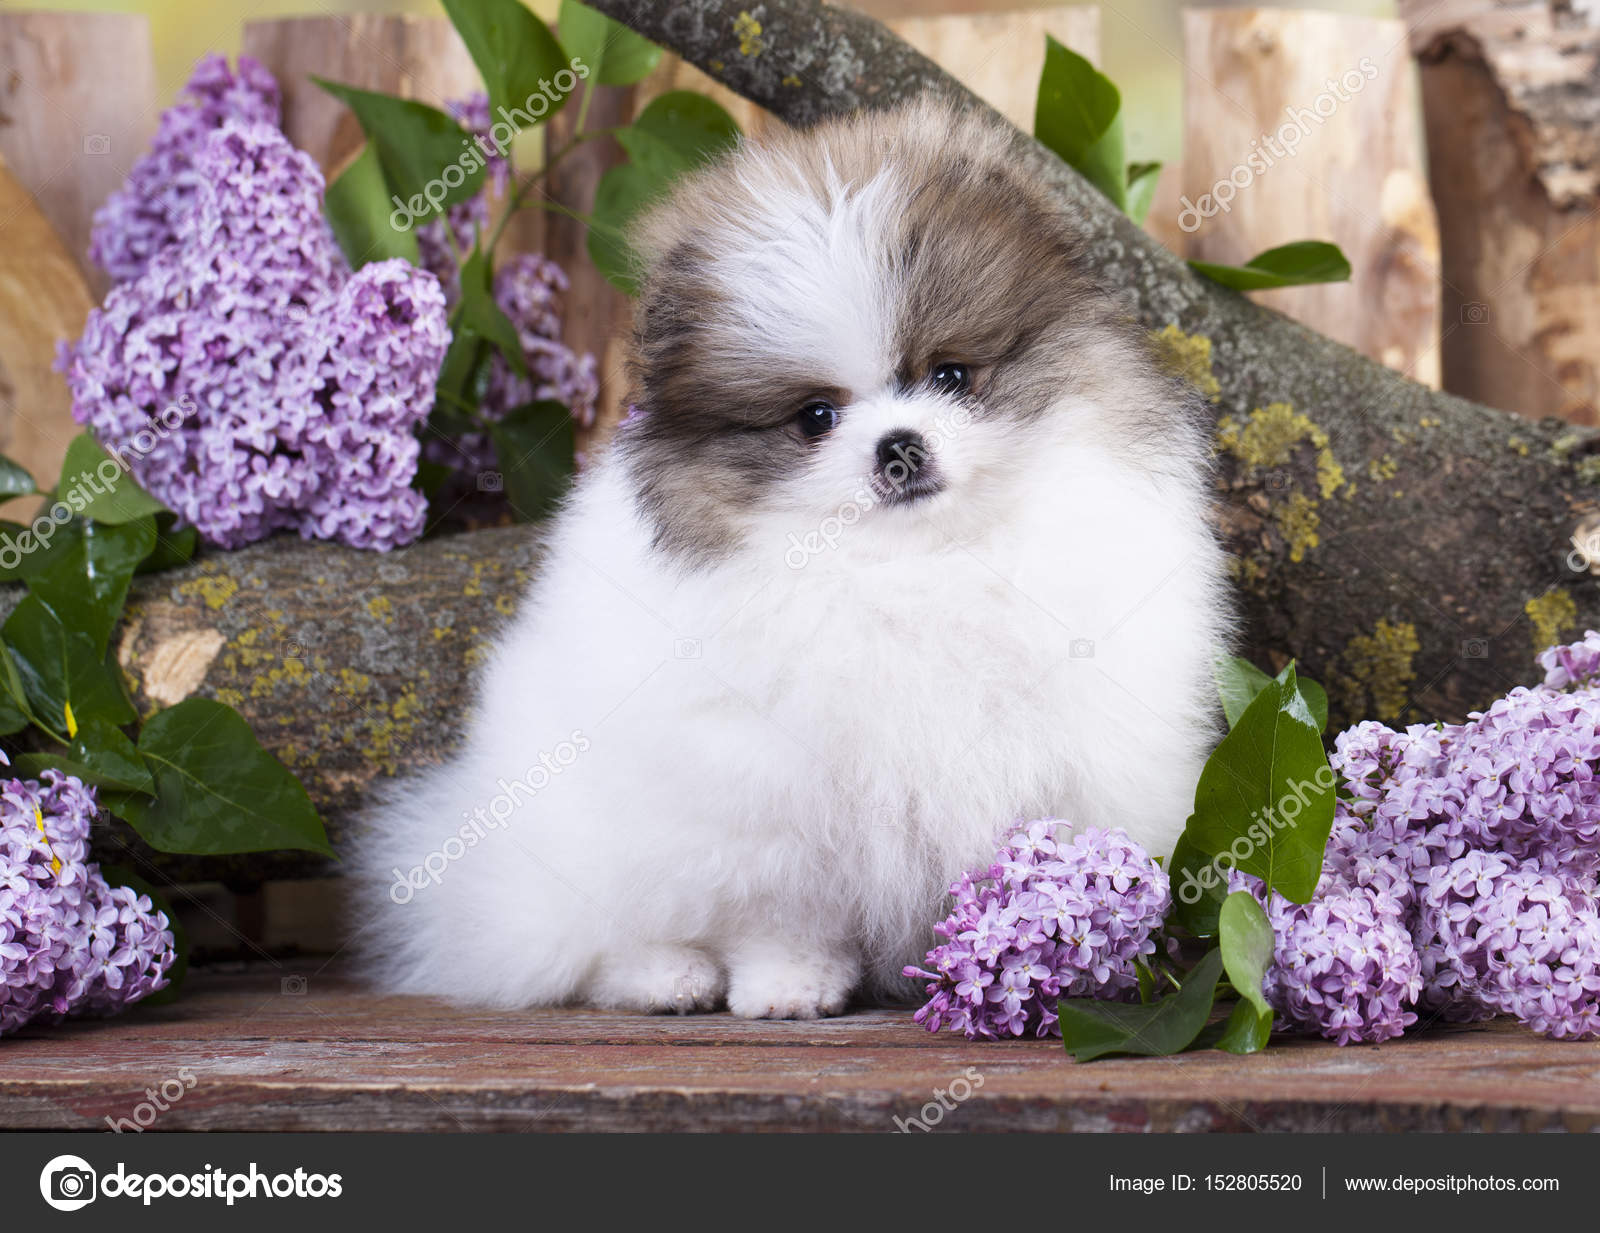 Simple Pomeranian Canine Adorable Dog - depositphotos_152805520-stock-photo-pomeranian-animal-breed-canine-cute  You Should Have_861486  .jpg